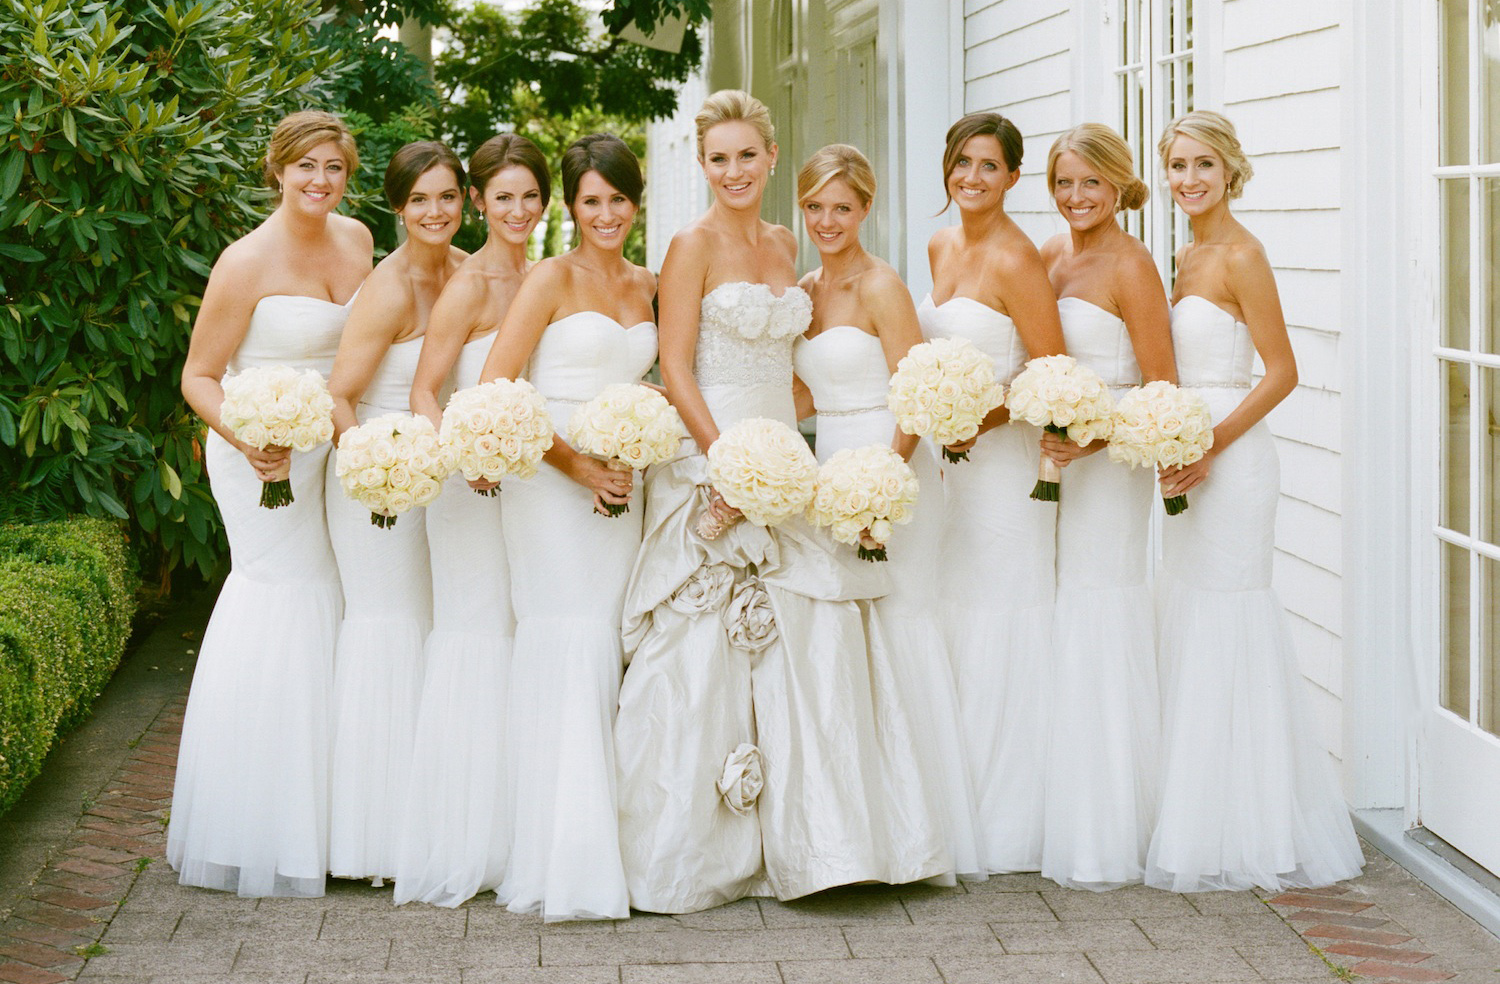 bride in ornate wedding dress with rose pickups in the middle of bridesmaids in strapless white dresses